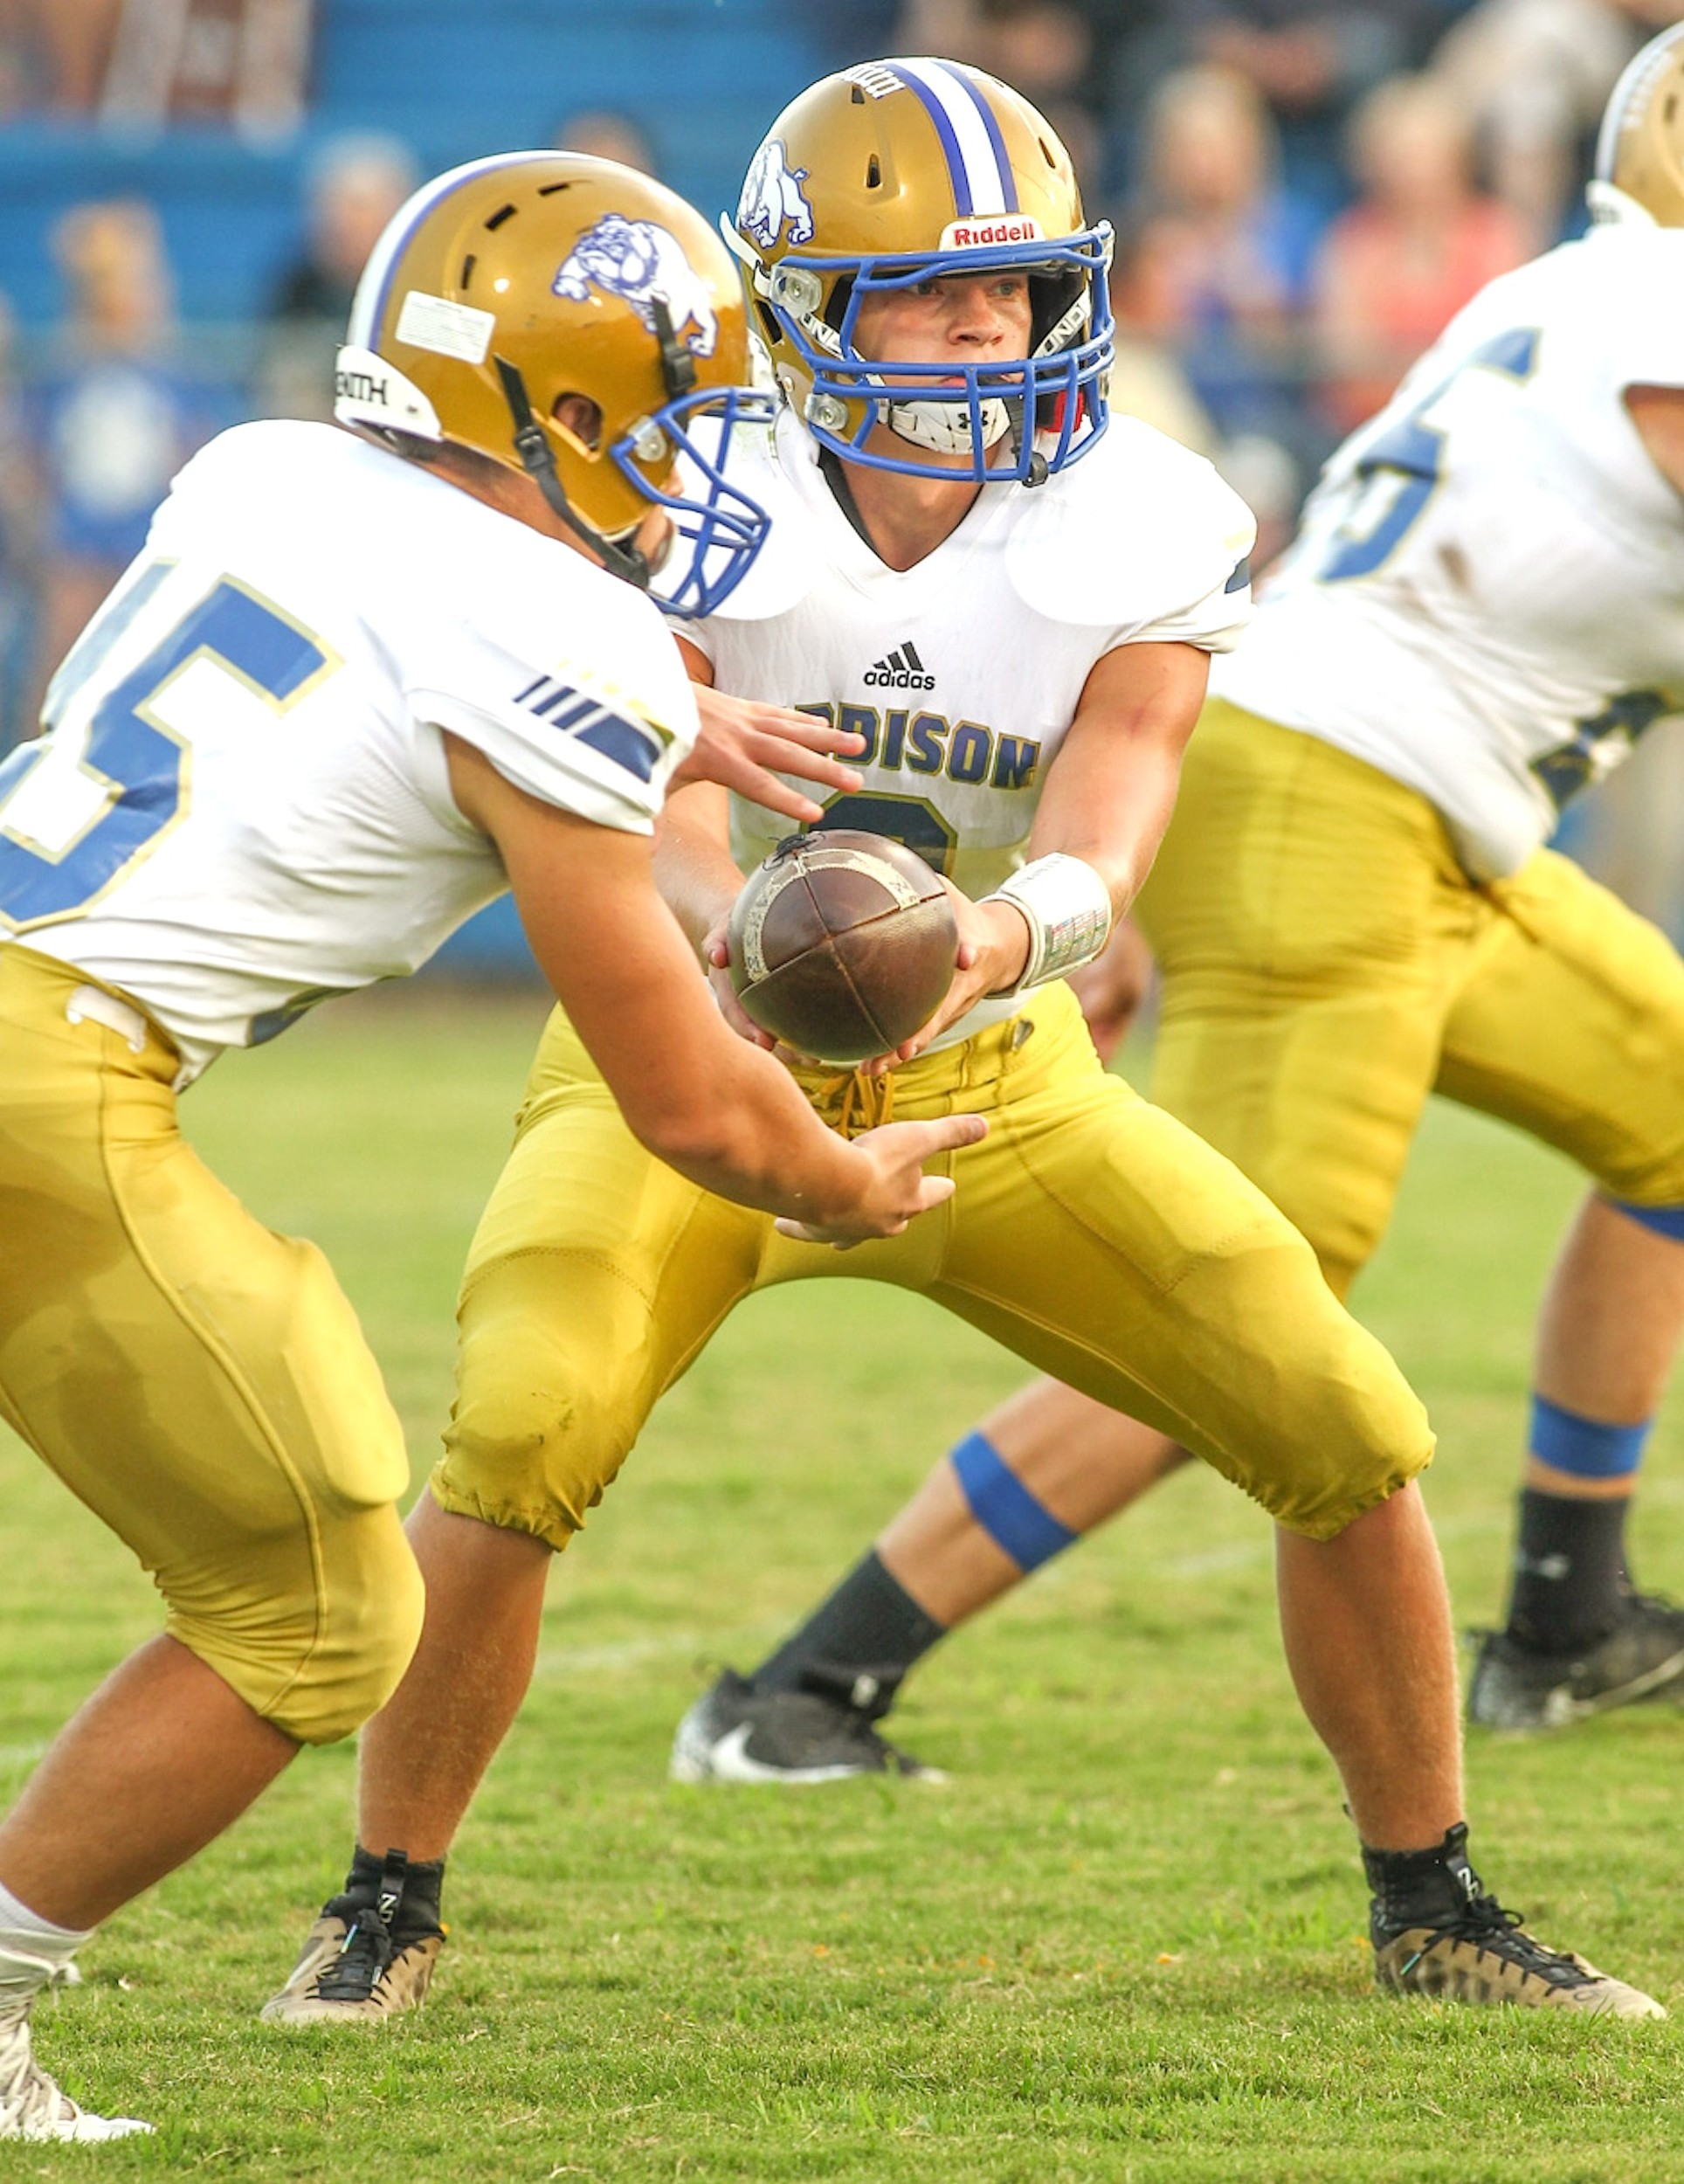 Addison quarterback Zayne Guthrie hands the ball off to Colton Tyree (45) during last week's win over Curry. The Bulldogs host perennial Class 3A power Piedmont tonight. Piedmont is 41-3 over the last three seasons.